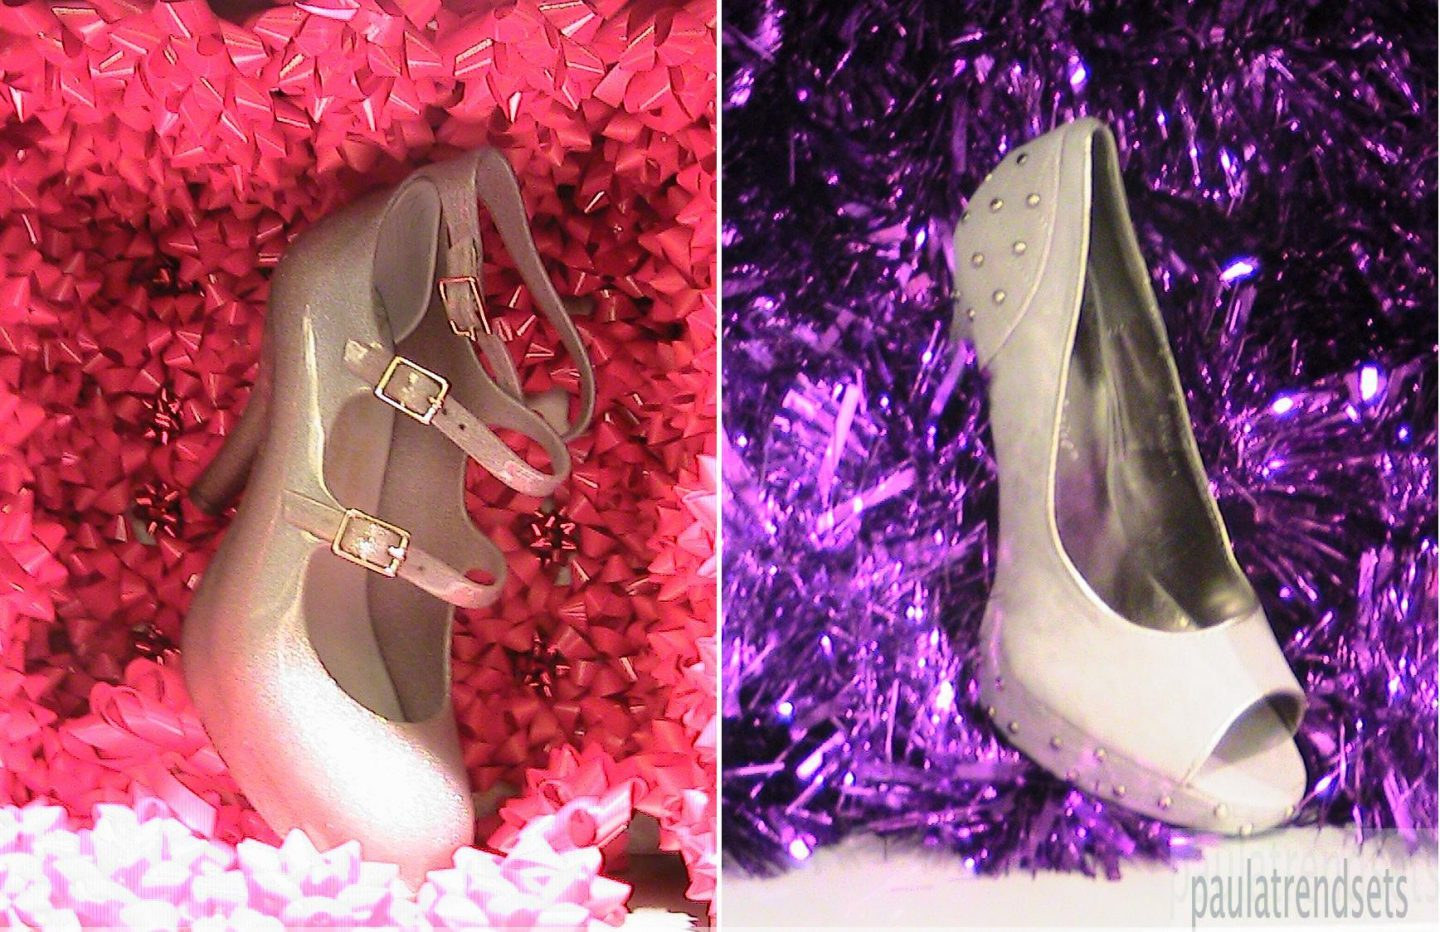 A Christmas Tree made of Designer Shoes at Harvey Nichols (Video)